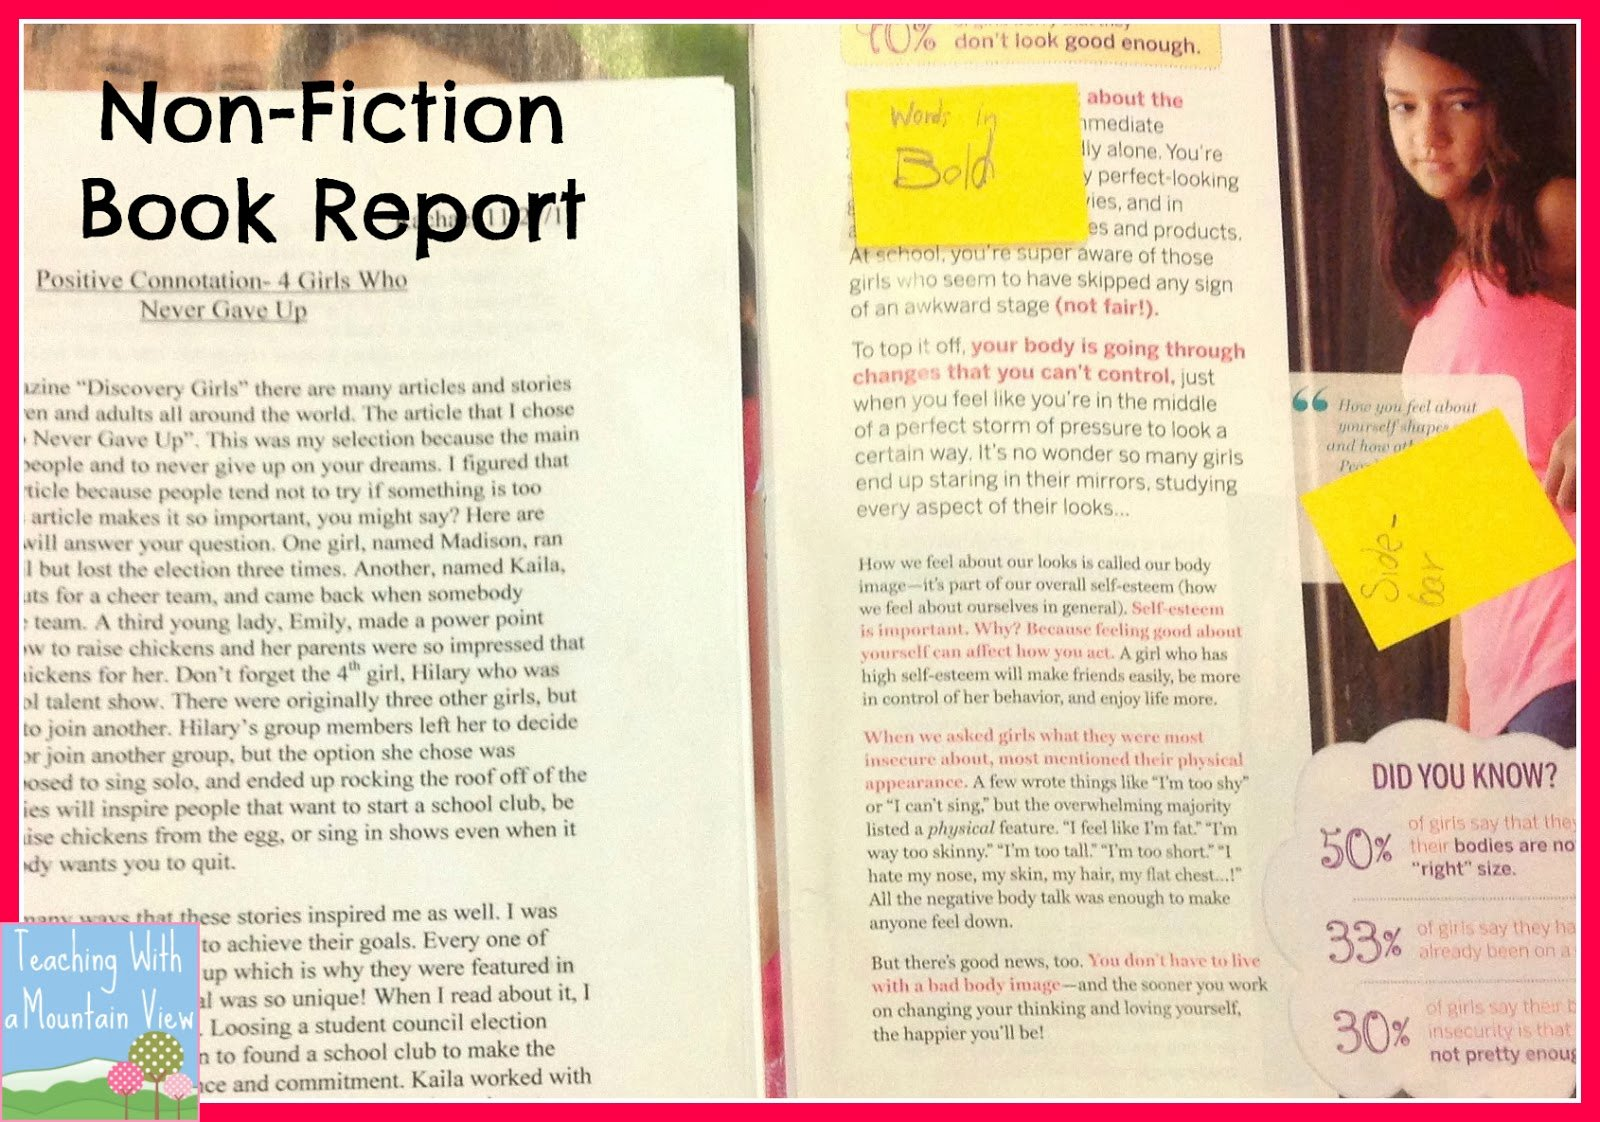 Nonfiction Book Report Template Awesome Teaching with A Mountain View Non Fiction Newspaper or